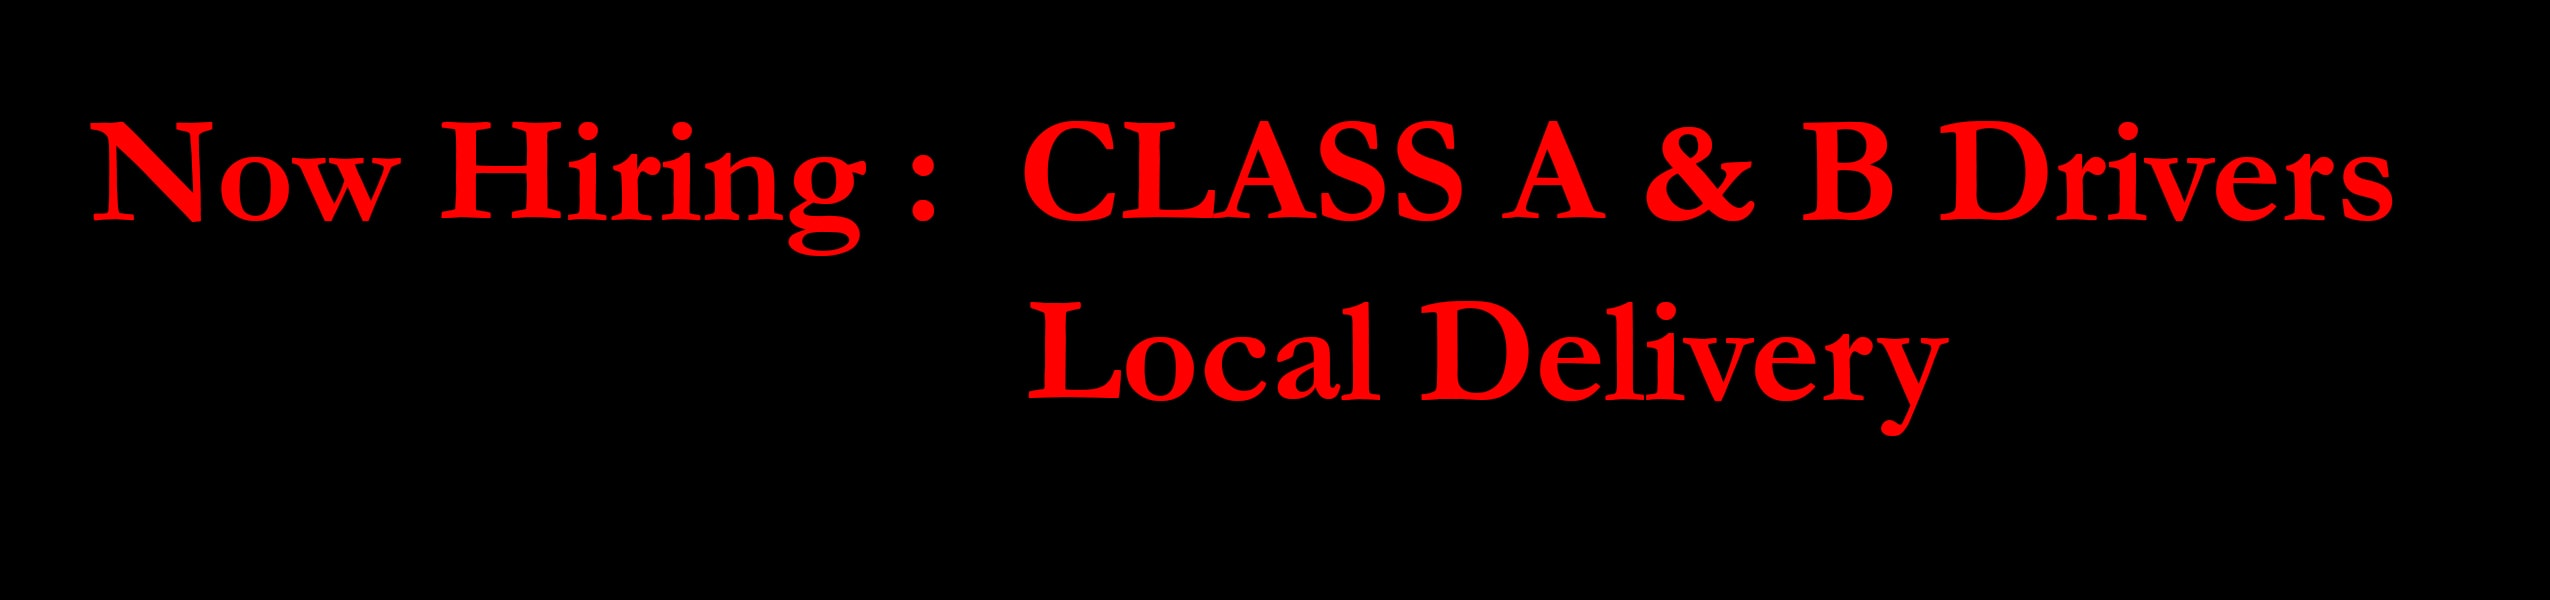 Now Hiring: CLASS A & B Drivers Local Delivery